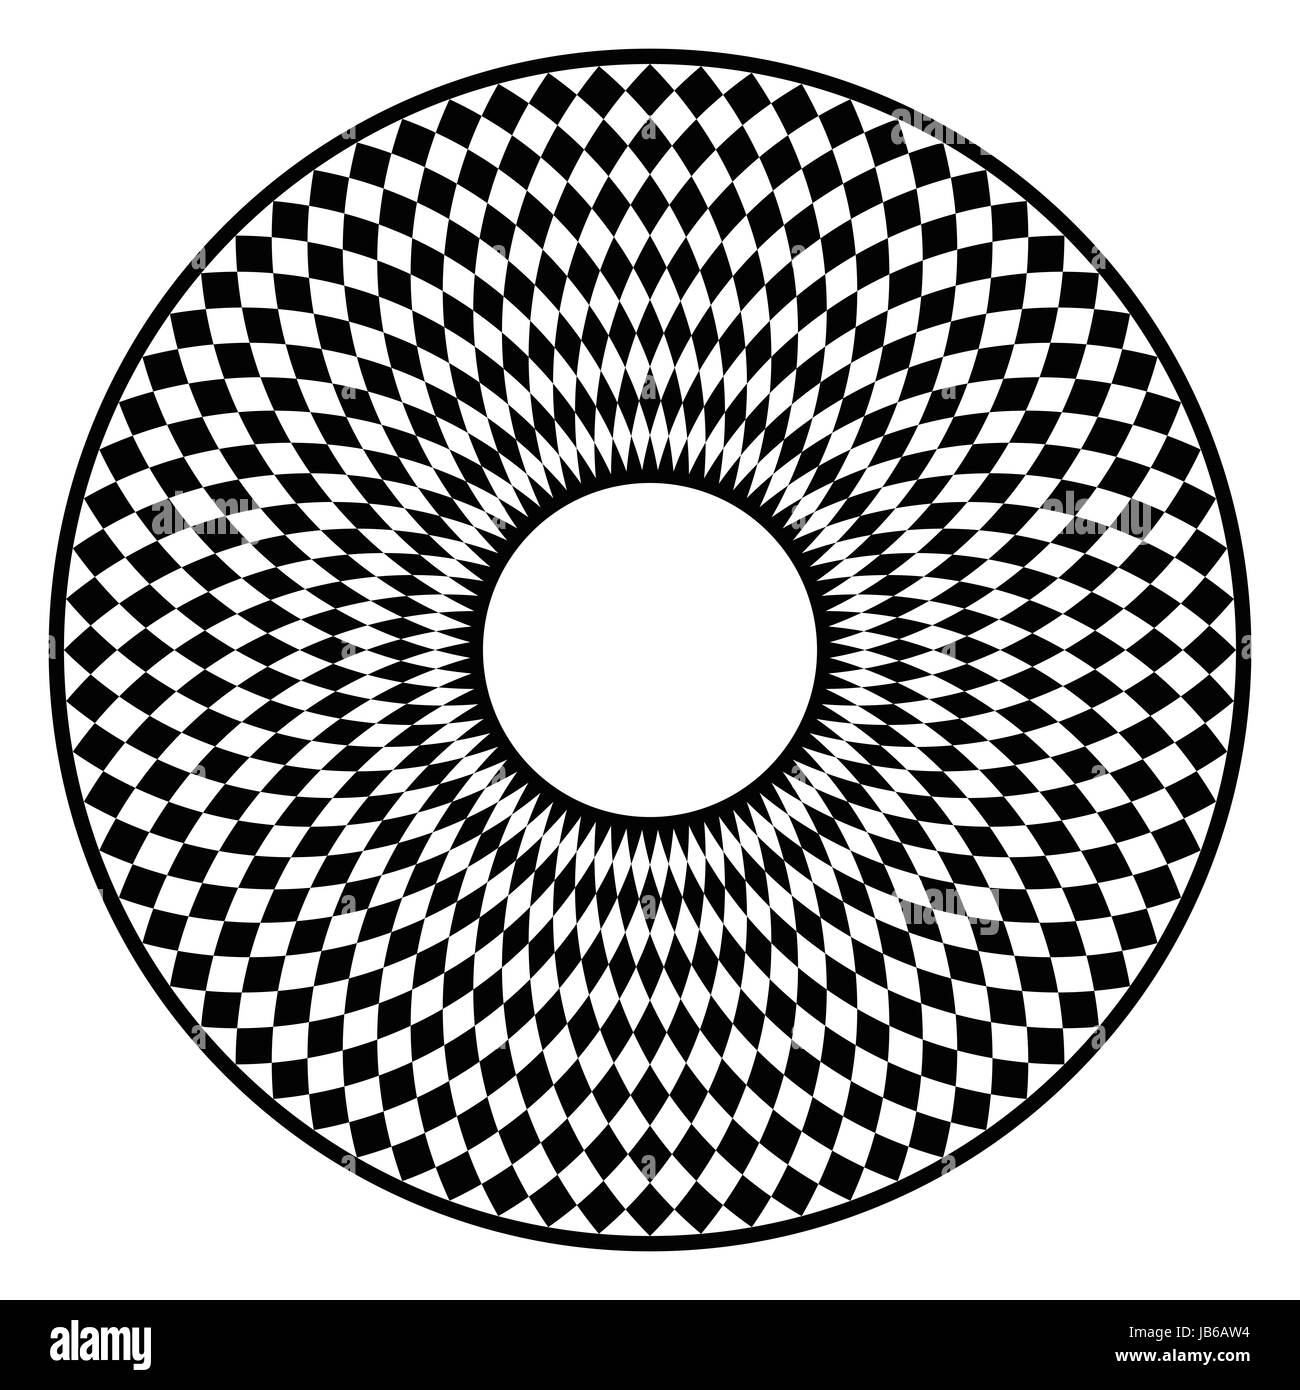 Circular checkerboard pattern. Disc with black chequered pattern in a circle with rhomboid tiling. Creates an optical - Stock Image